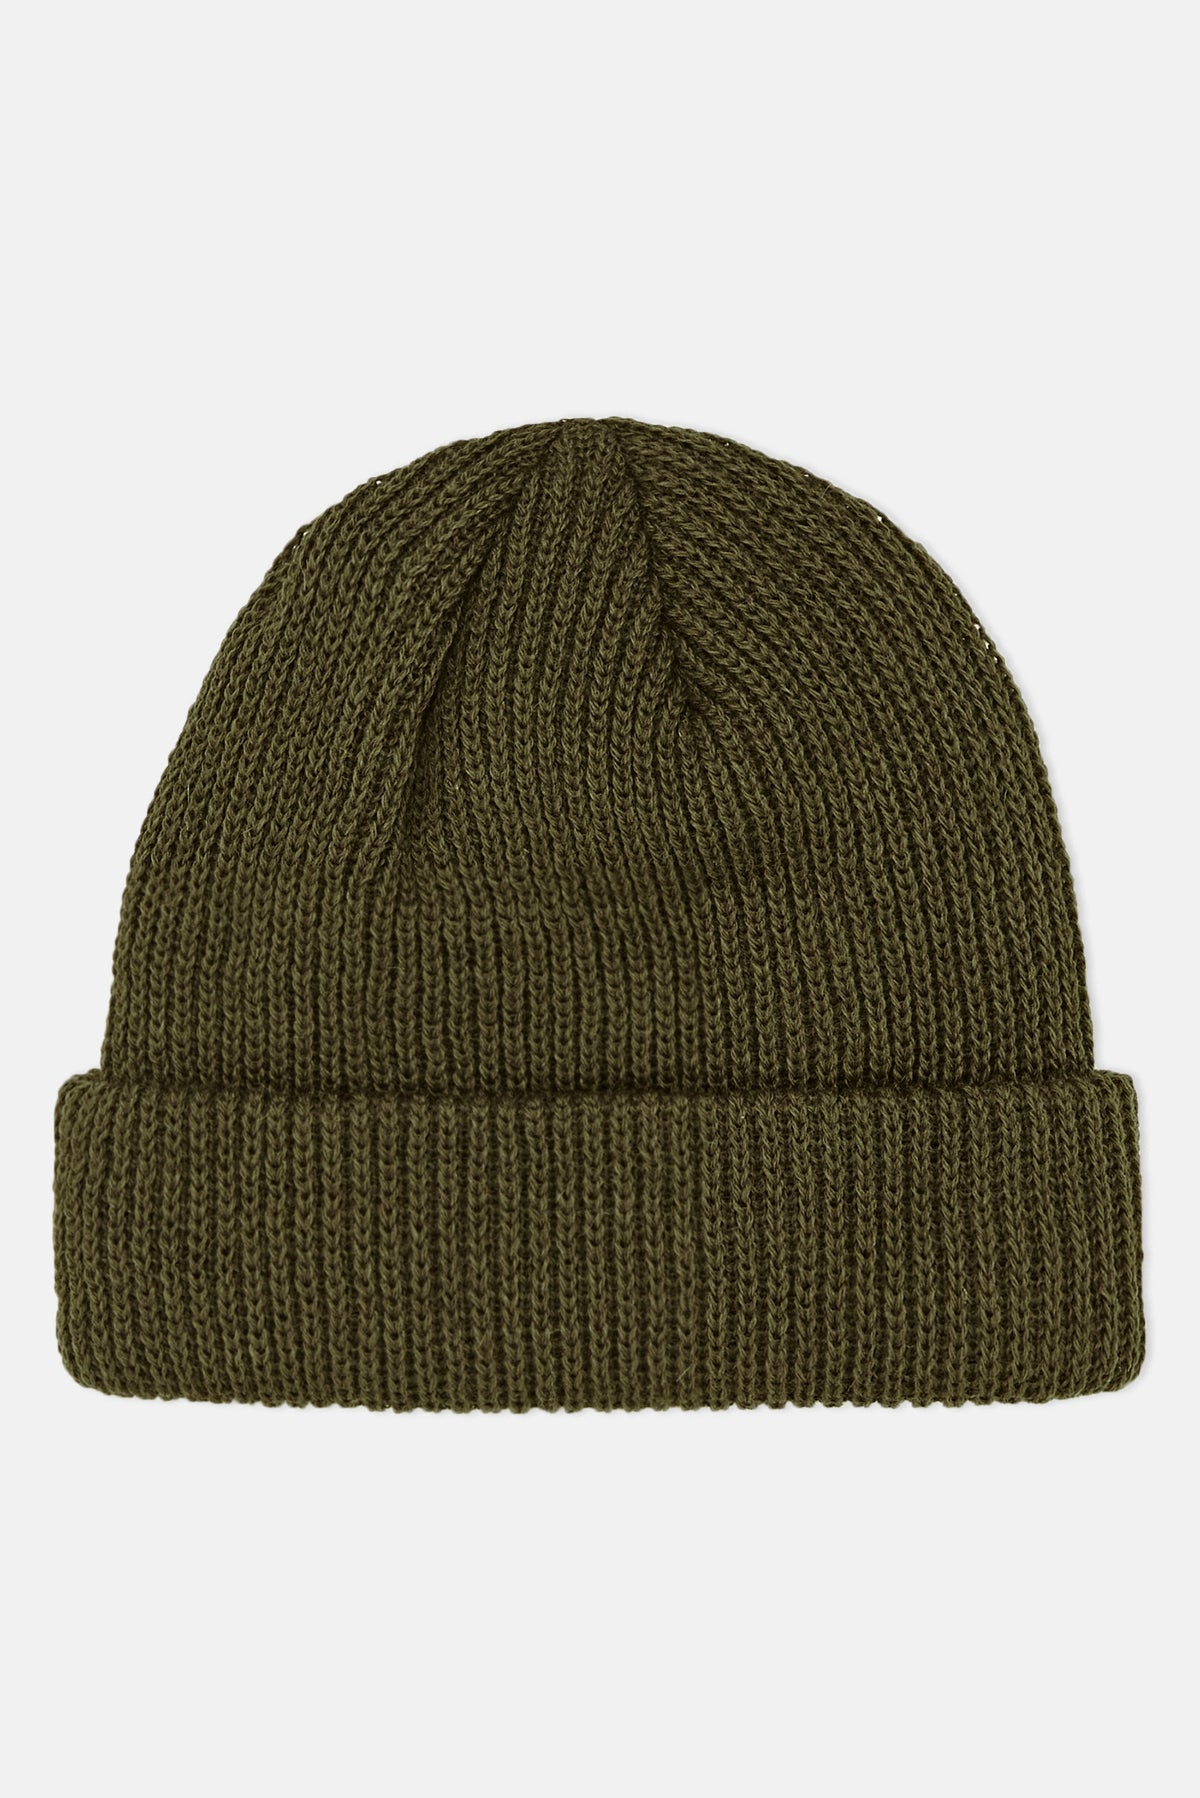 Filson Watch Cap Beanie available from Priory 7e0d2d729f4f